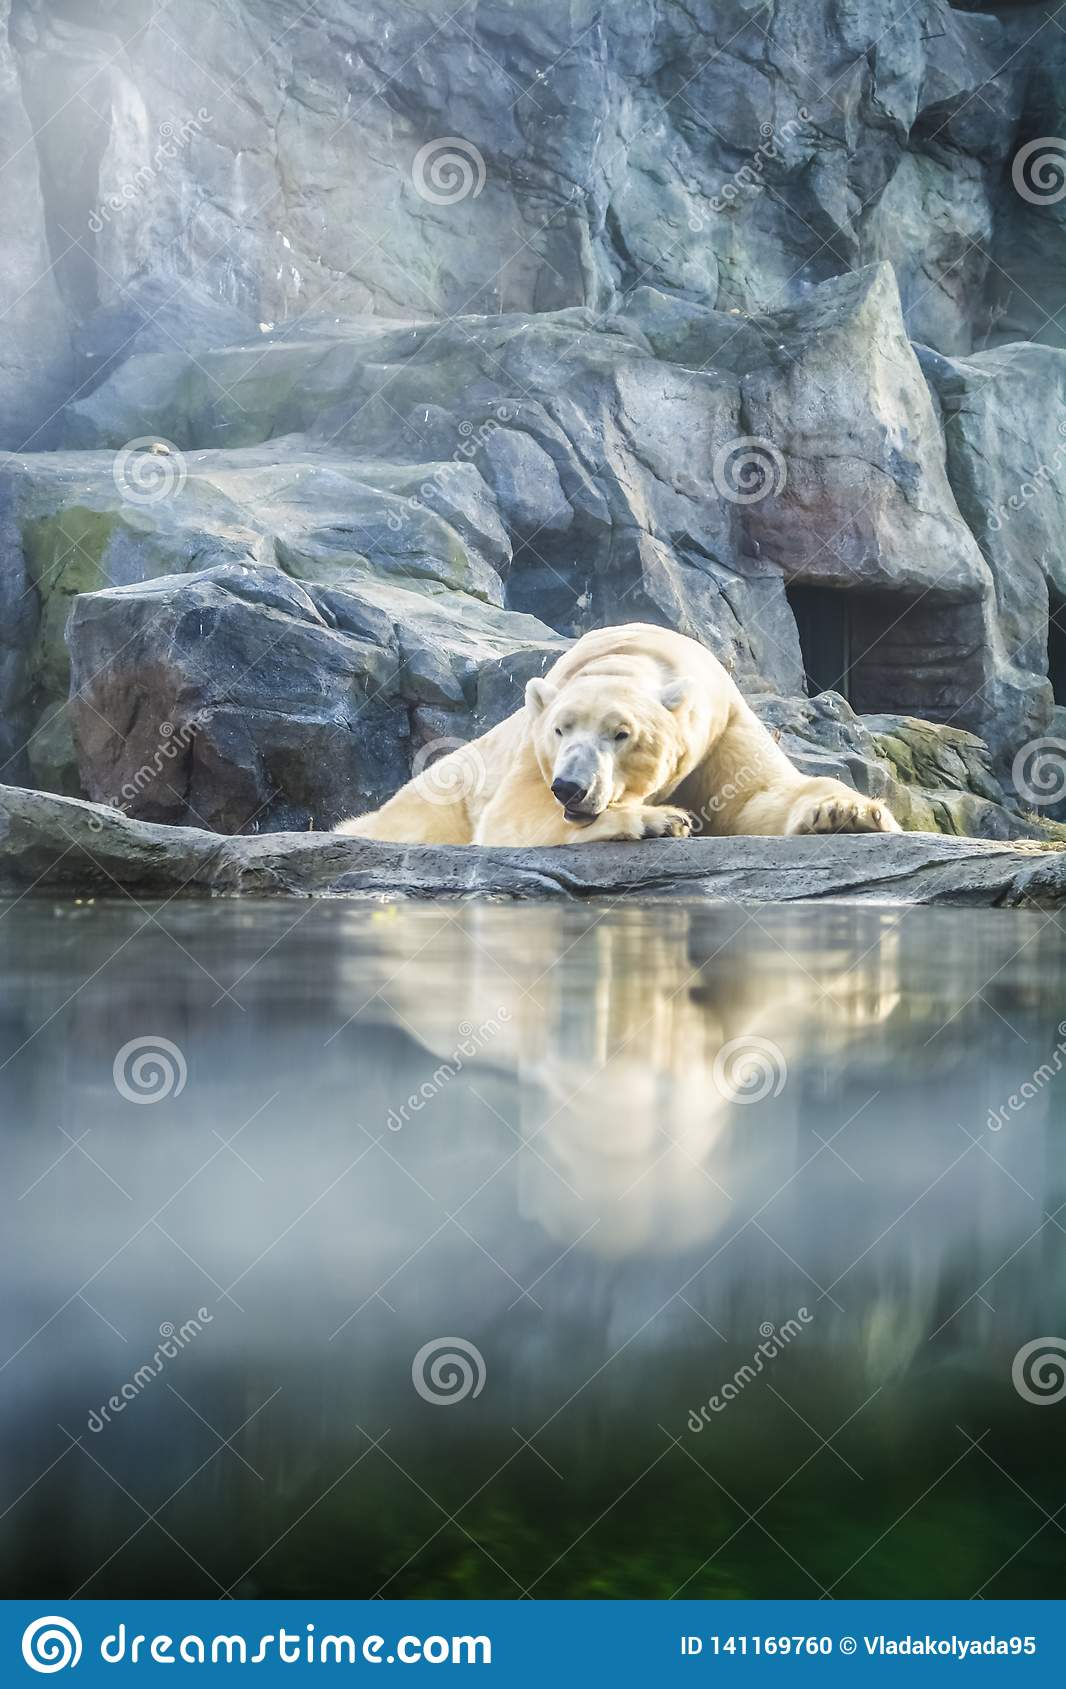 The polar bear lies has a rest among rocks in zoo. A photo in a haze, an indistinct picture because of aquarium glass. Predator